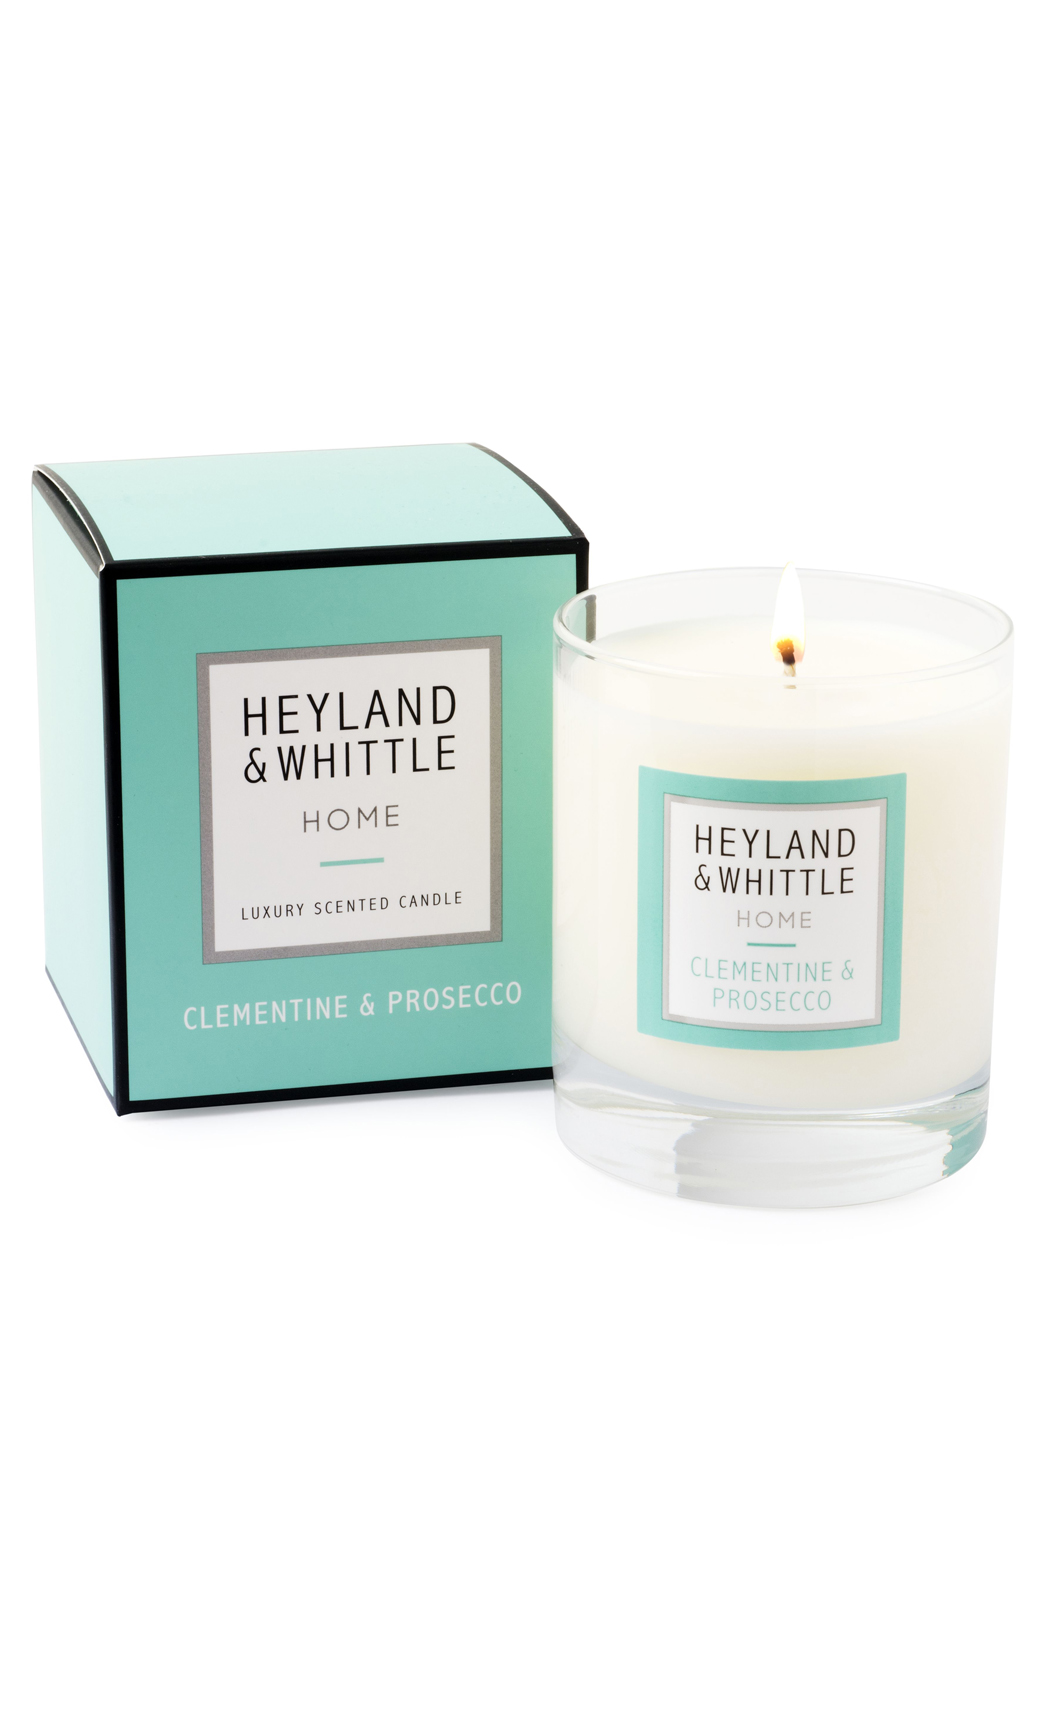 Clementine & Prosecco Scented Soy Wax Candle by Heyland & Whittle